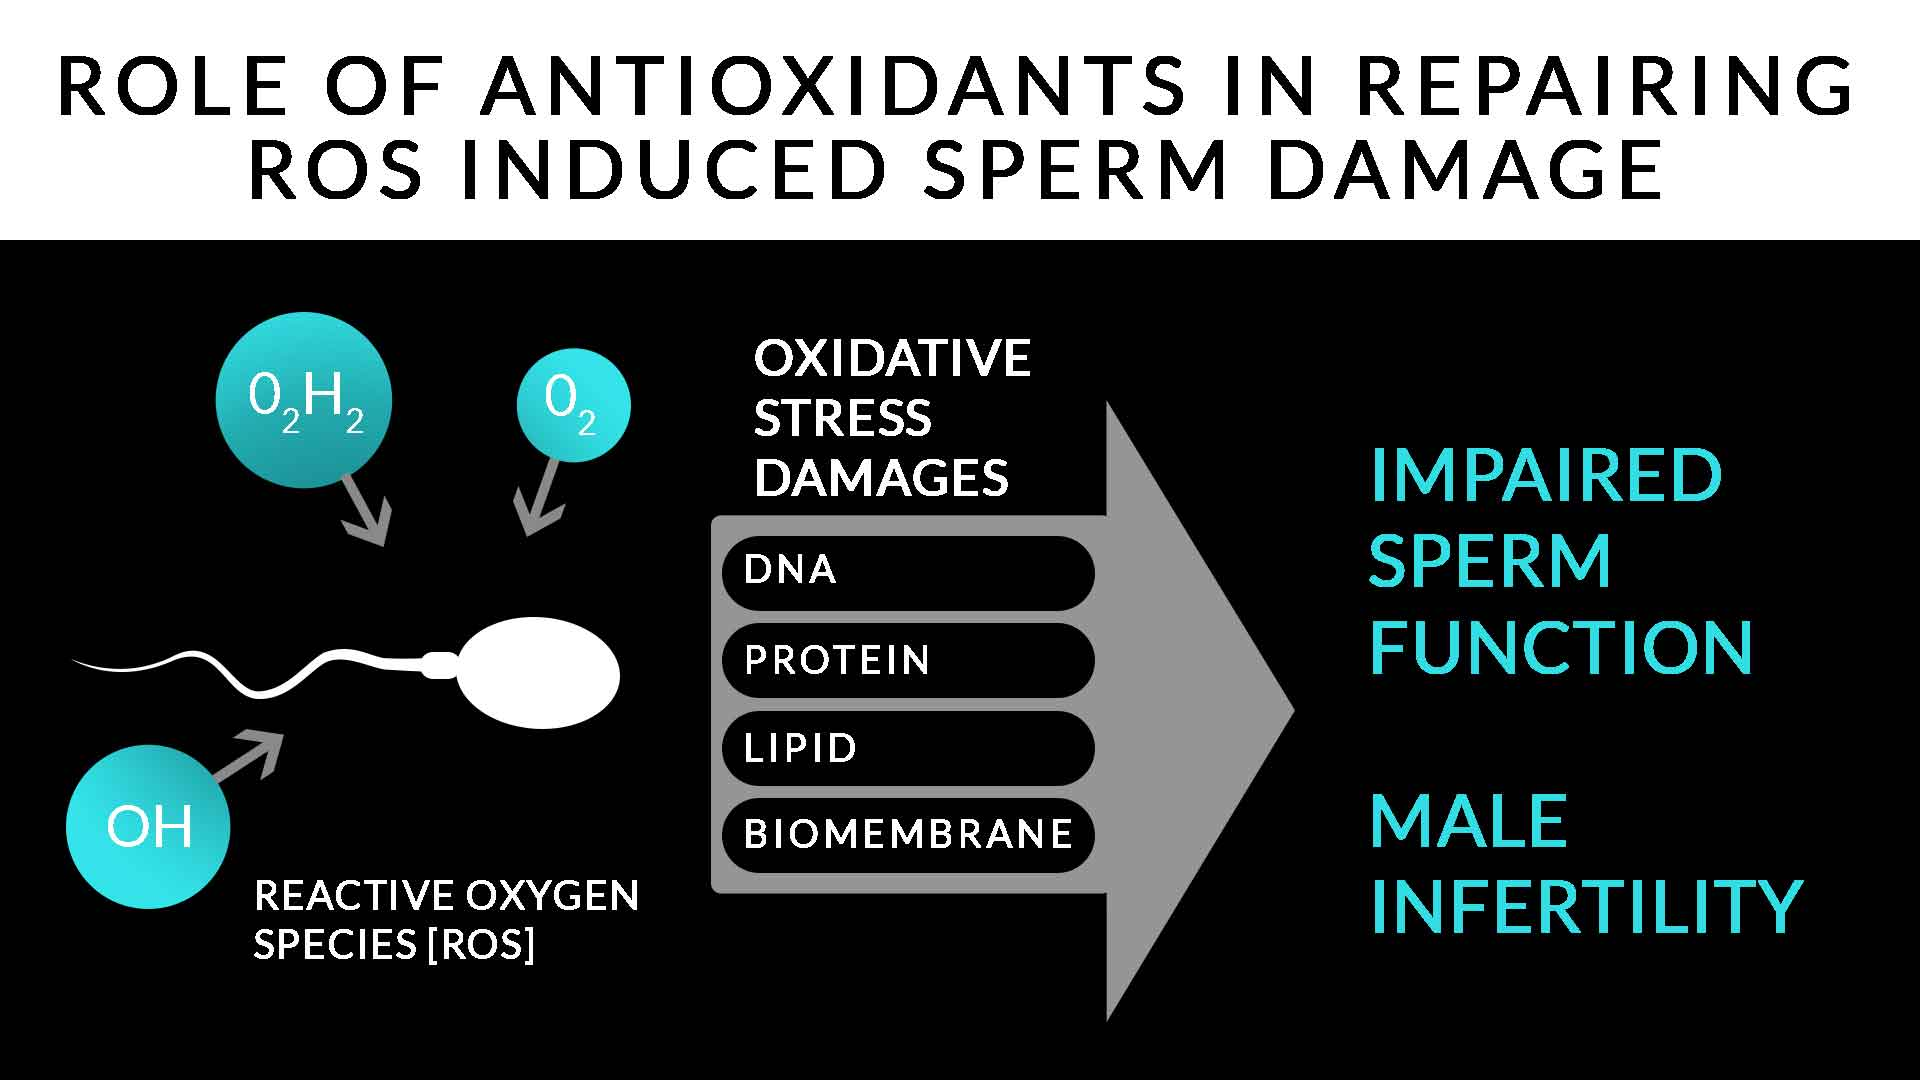 male-infertility-causes-and-treatment--antioxidant-therapy-to-combat-sperm-damage